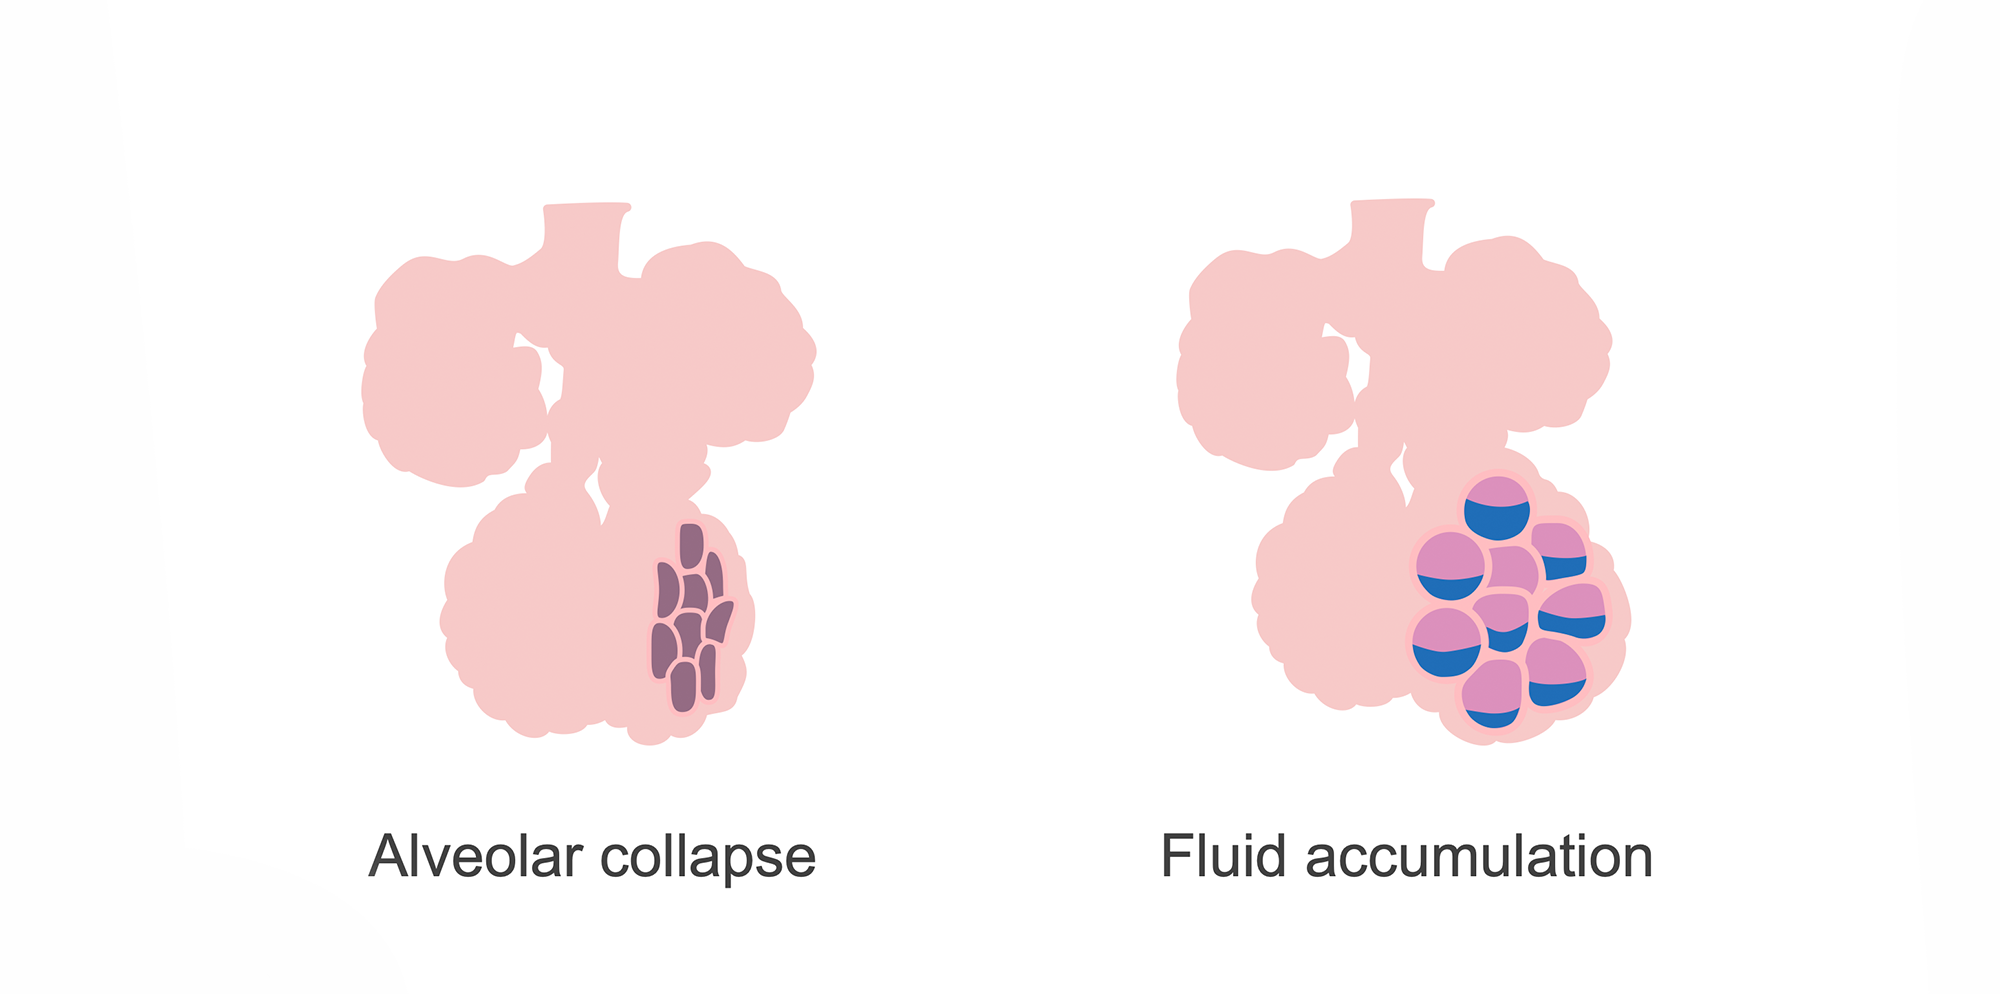 Alveoli showing collapse and fluid accumulation. Illustration.